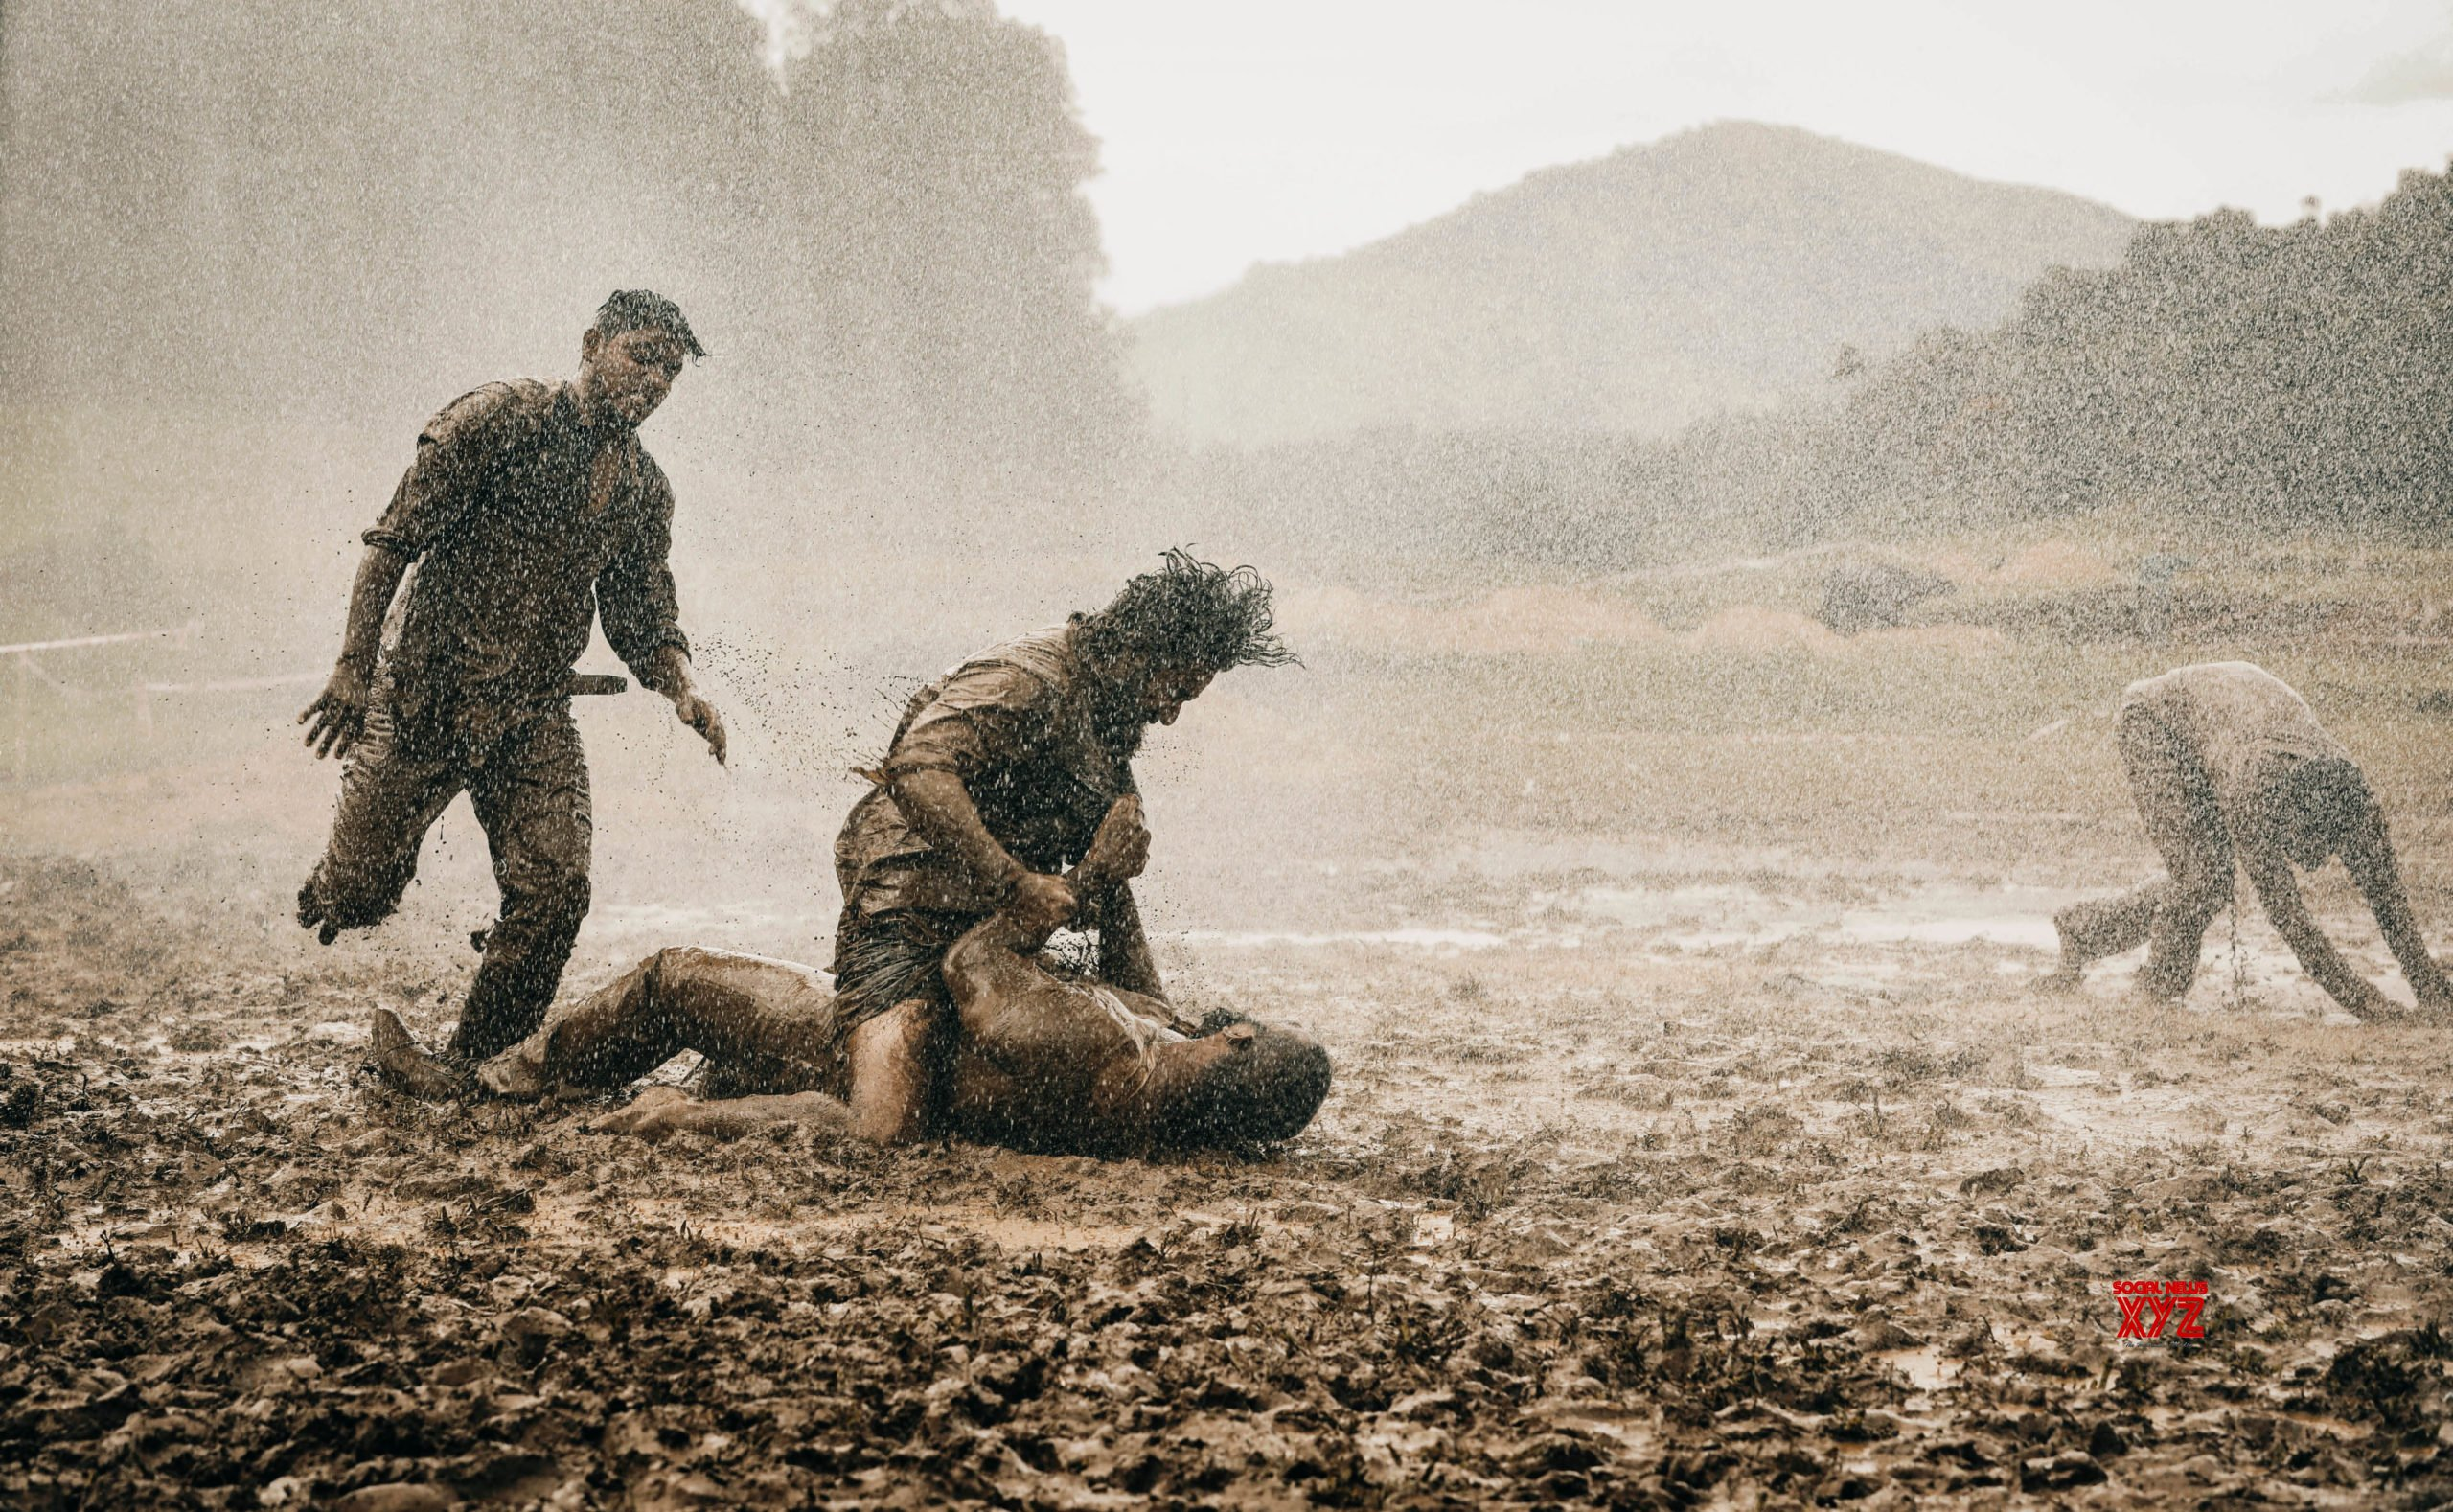 India's First Mud Race Movie Muddy Releasing In 5 Languages